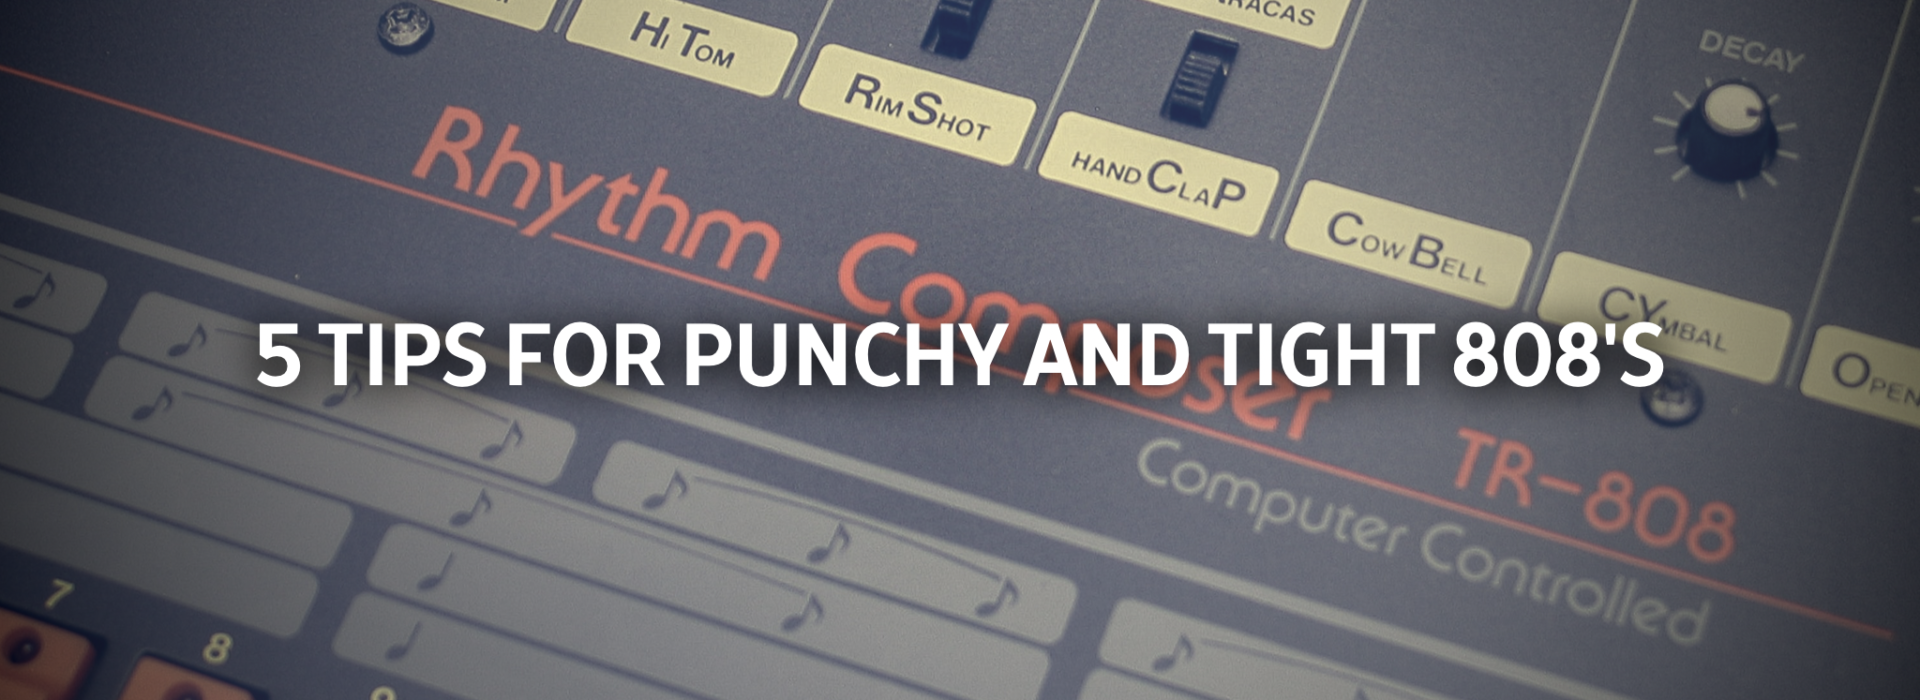 5 Tips For Punchy and Tight 808's